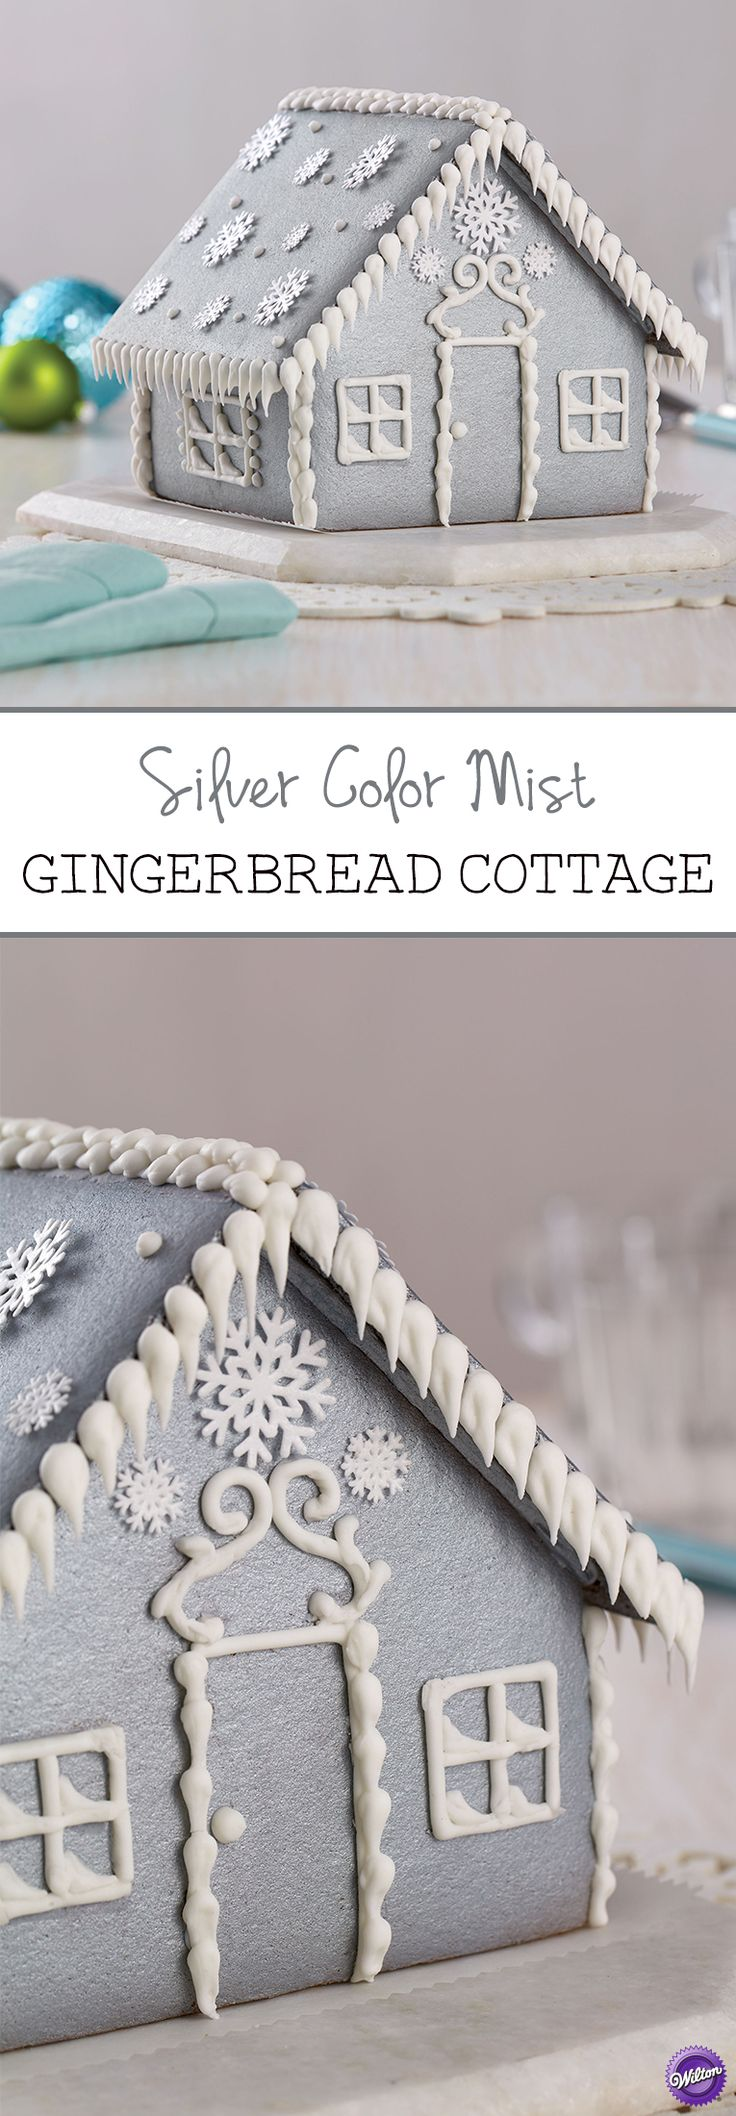 Spray your gingerbread house with Wilton Silver Color Mist for a wonderful wintry gingerbread cottage!